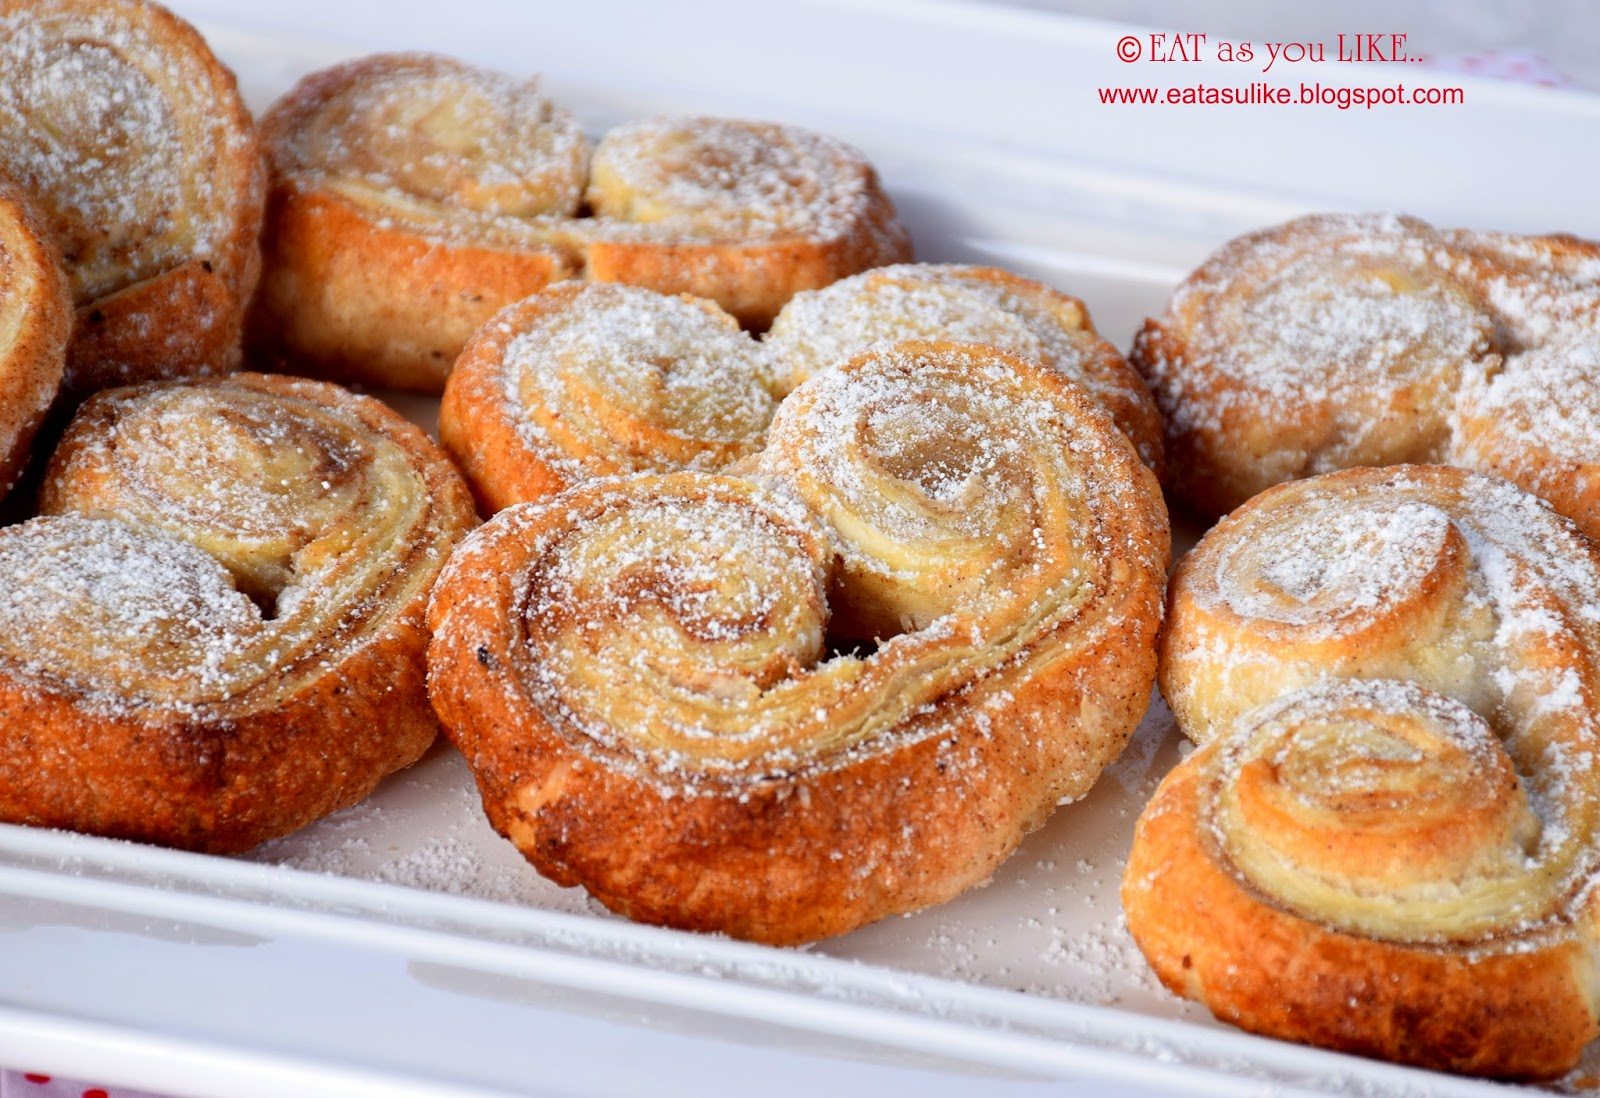 ... Like: CITRUS AND CINNAMON PALMIERS - ELEPHANT EARS OR FRENCH HEARTS